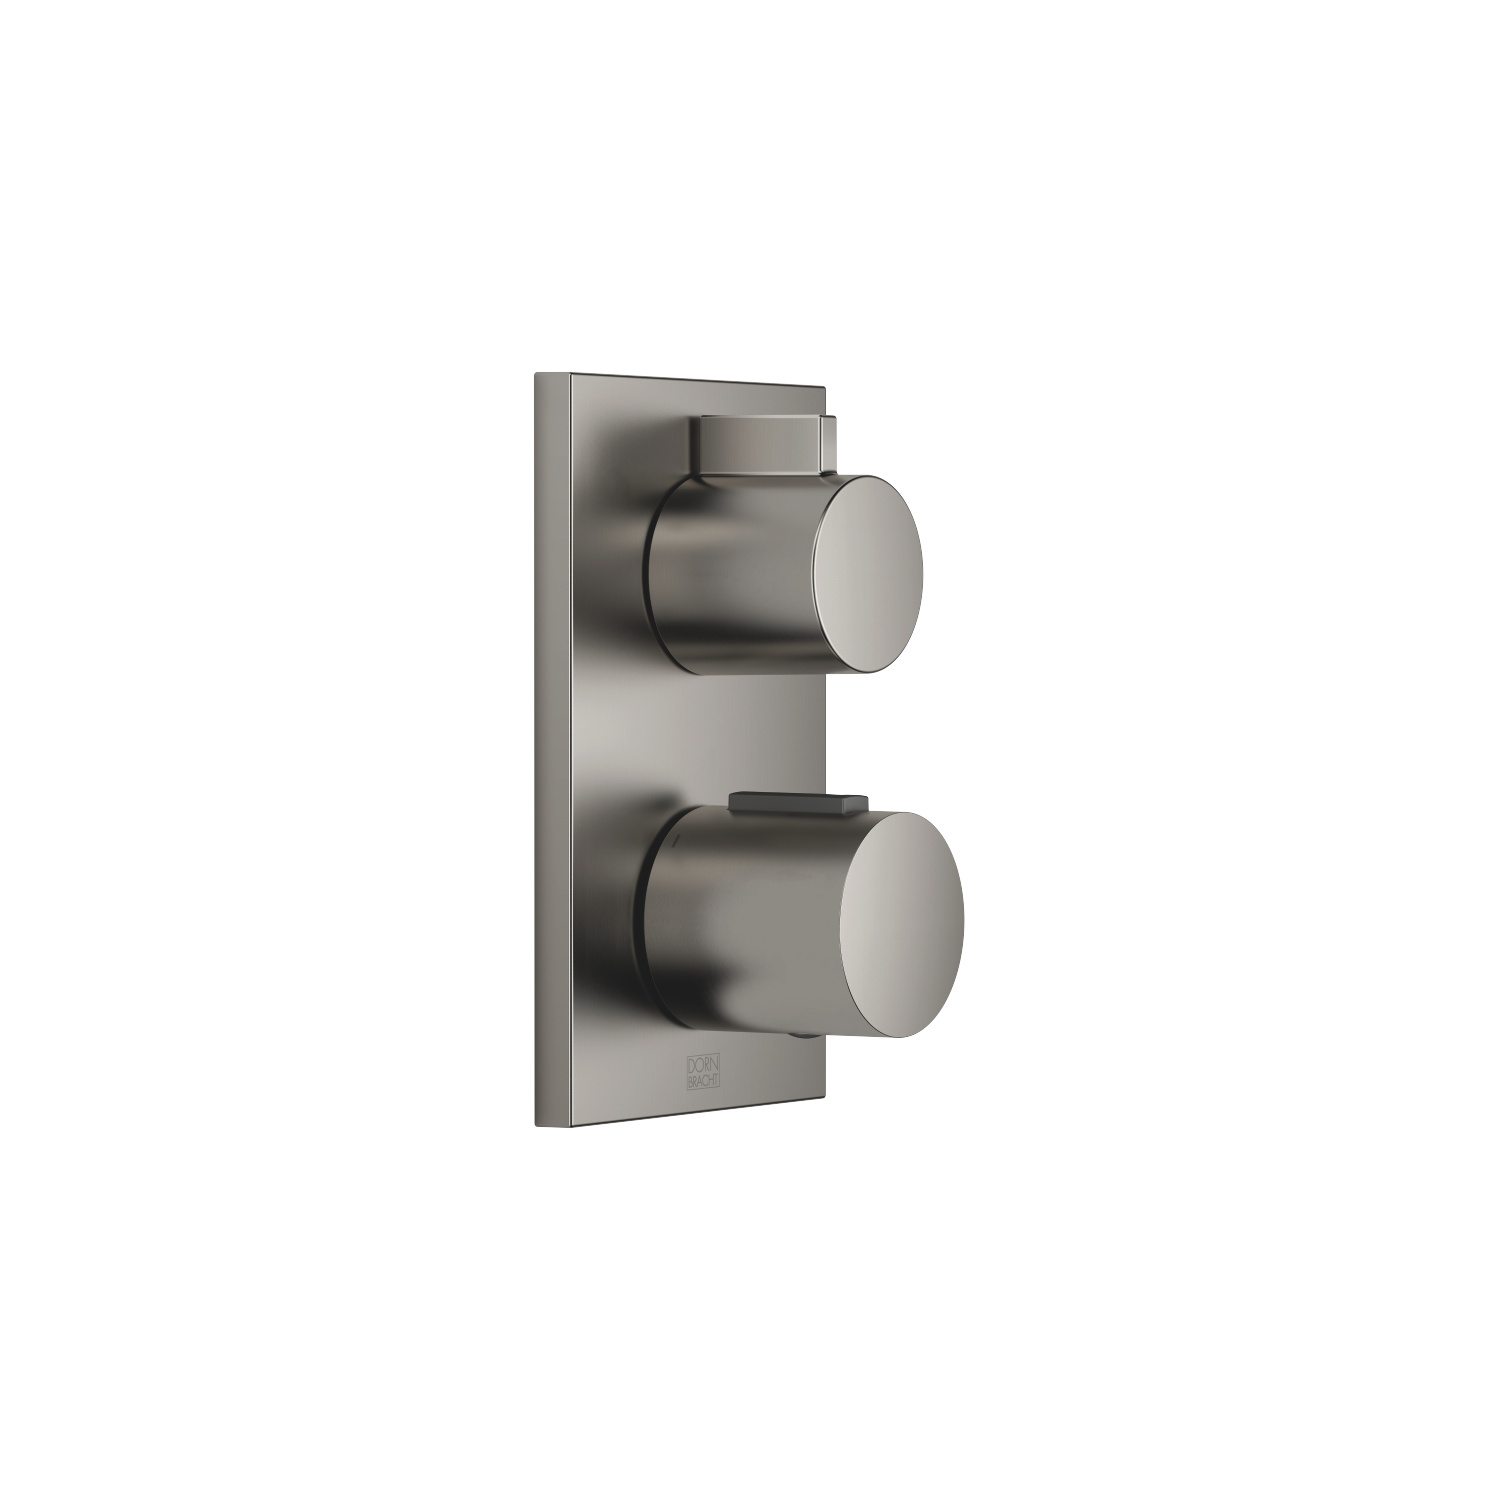 Concealed thermostat with one function volume control - Dark Platinum matt